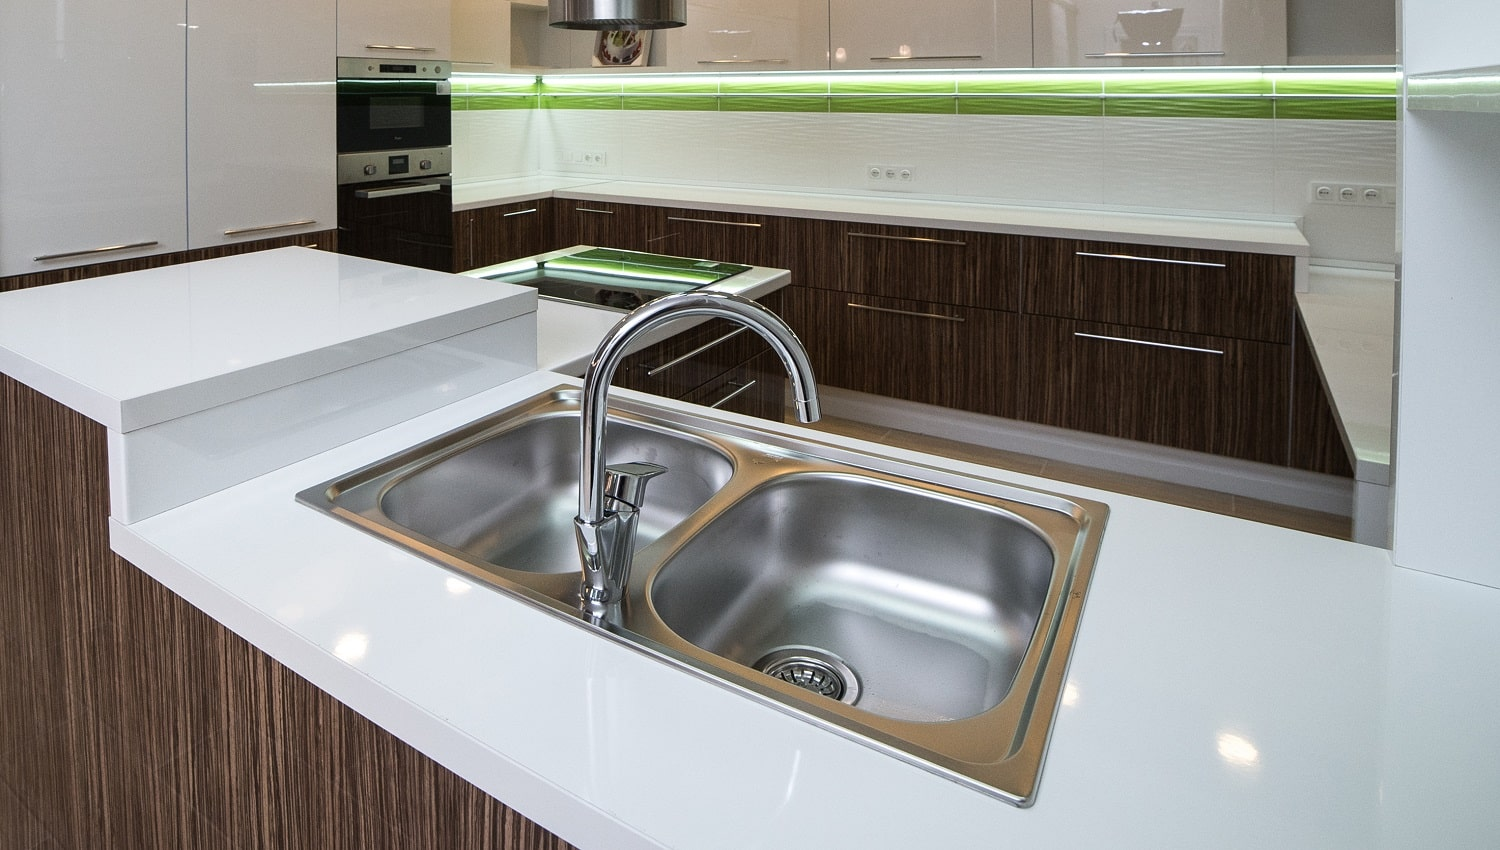 13 Best Double Bowl Kitchen Sinks Architecture Lab